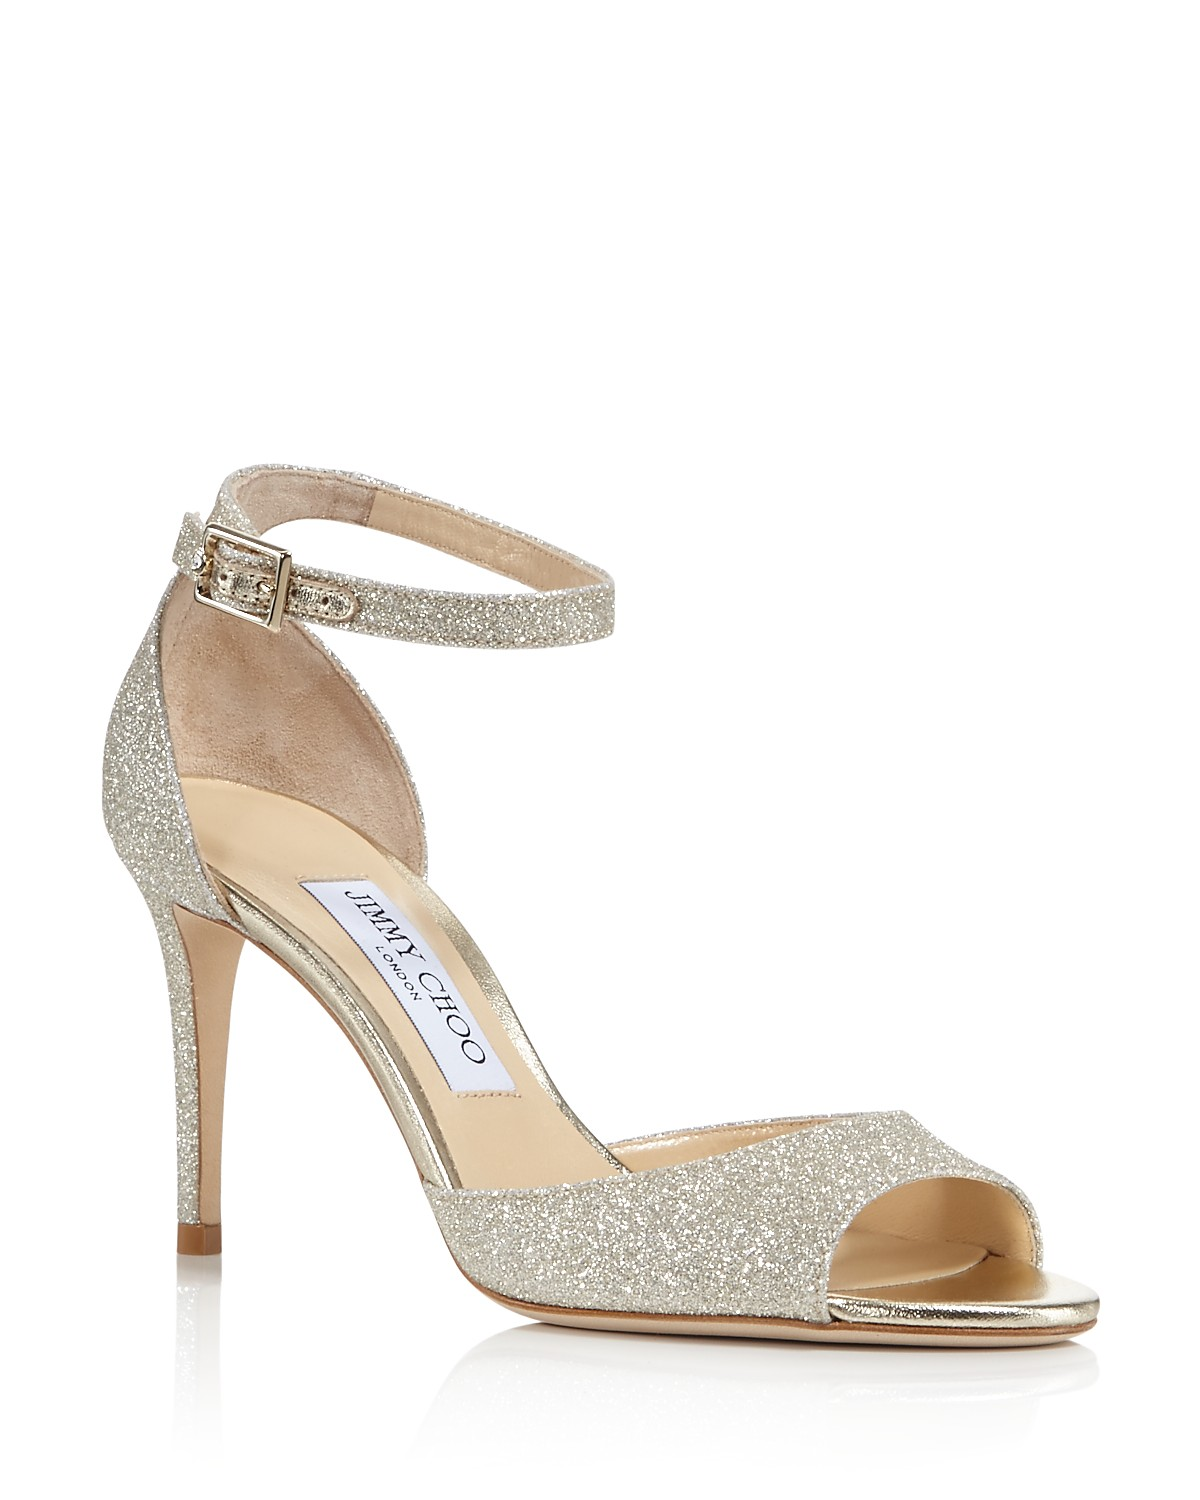 Jimmy choo Women's Annie 85 Glittered Suede High-Heel Ankle Strap Sandals 2brgGcKaT7